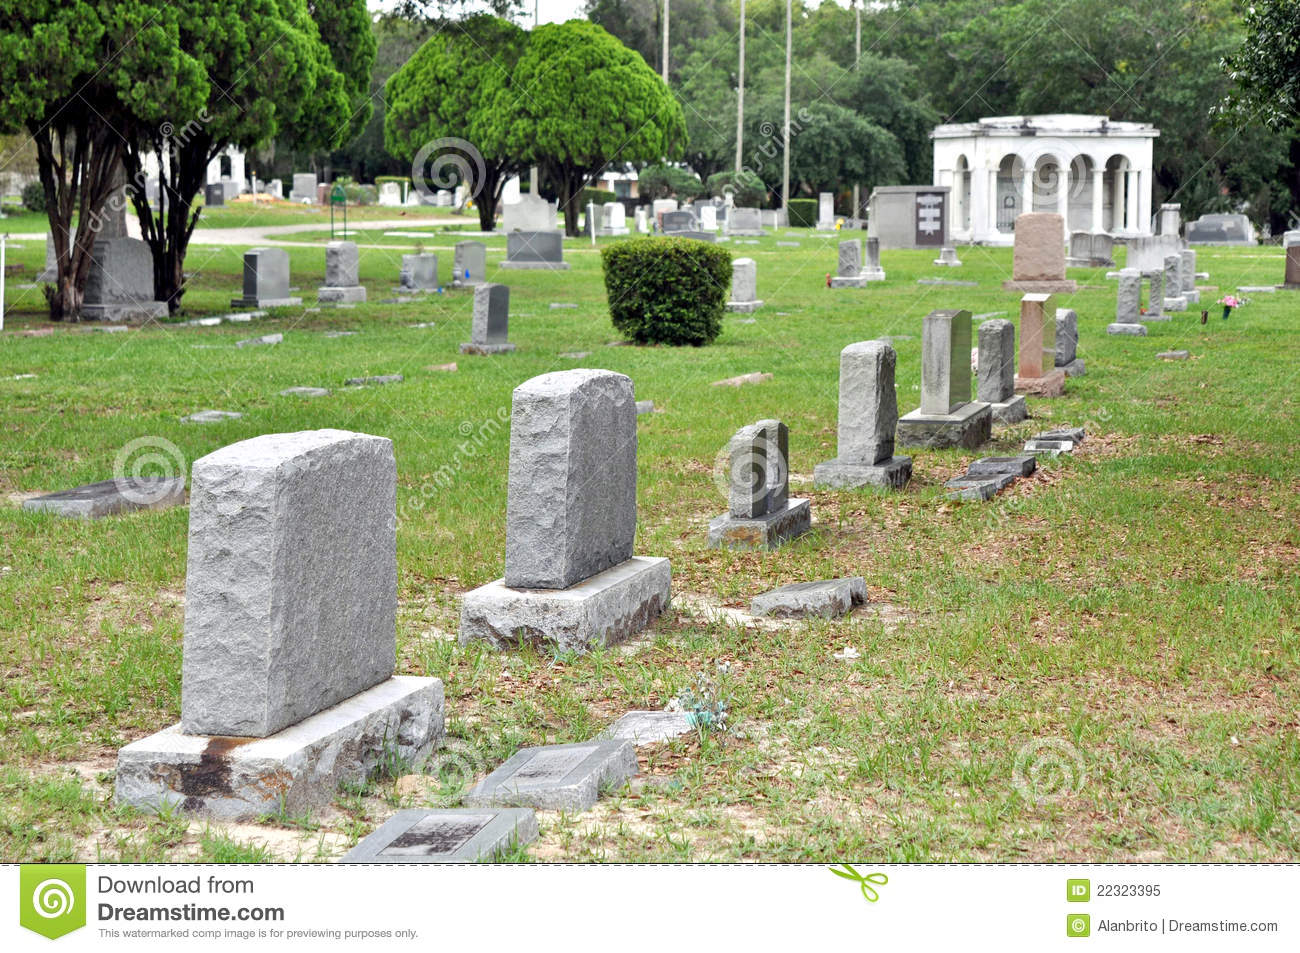 Stone crypts at a cemetery.